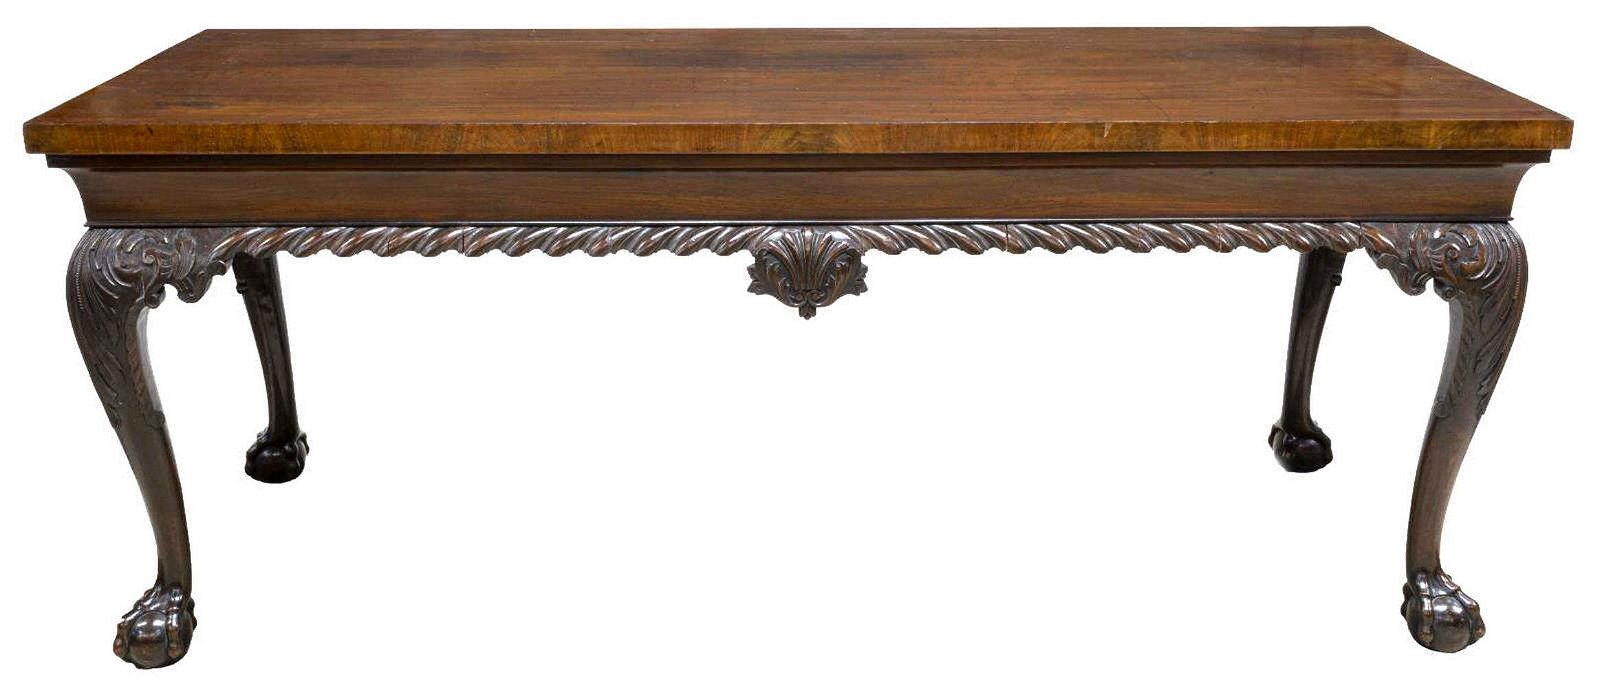 LARGE IRISH GEORGIAN CHIPPENDALE STYLE CONSOLE TABLE